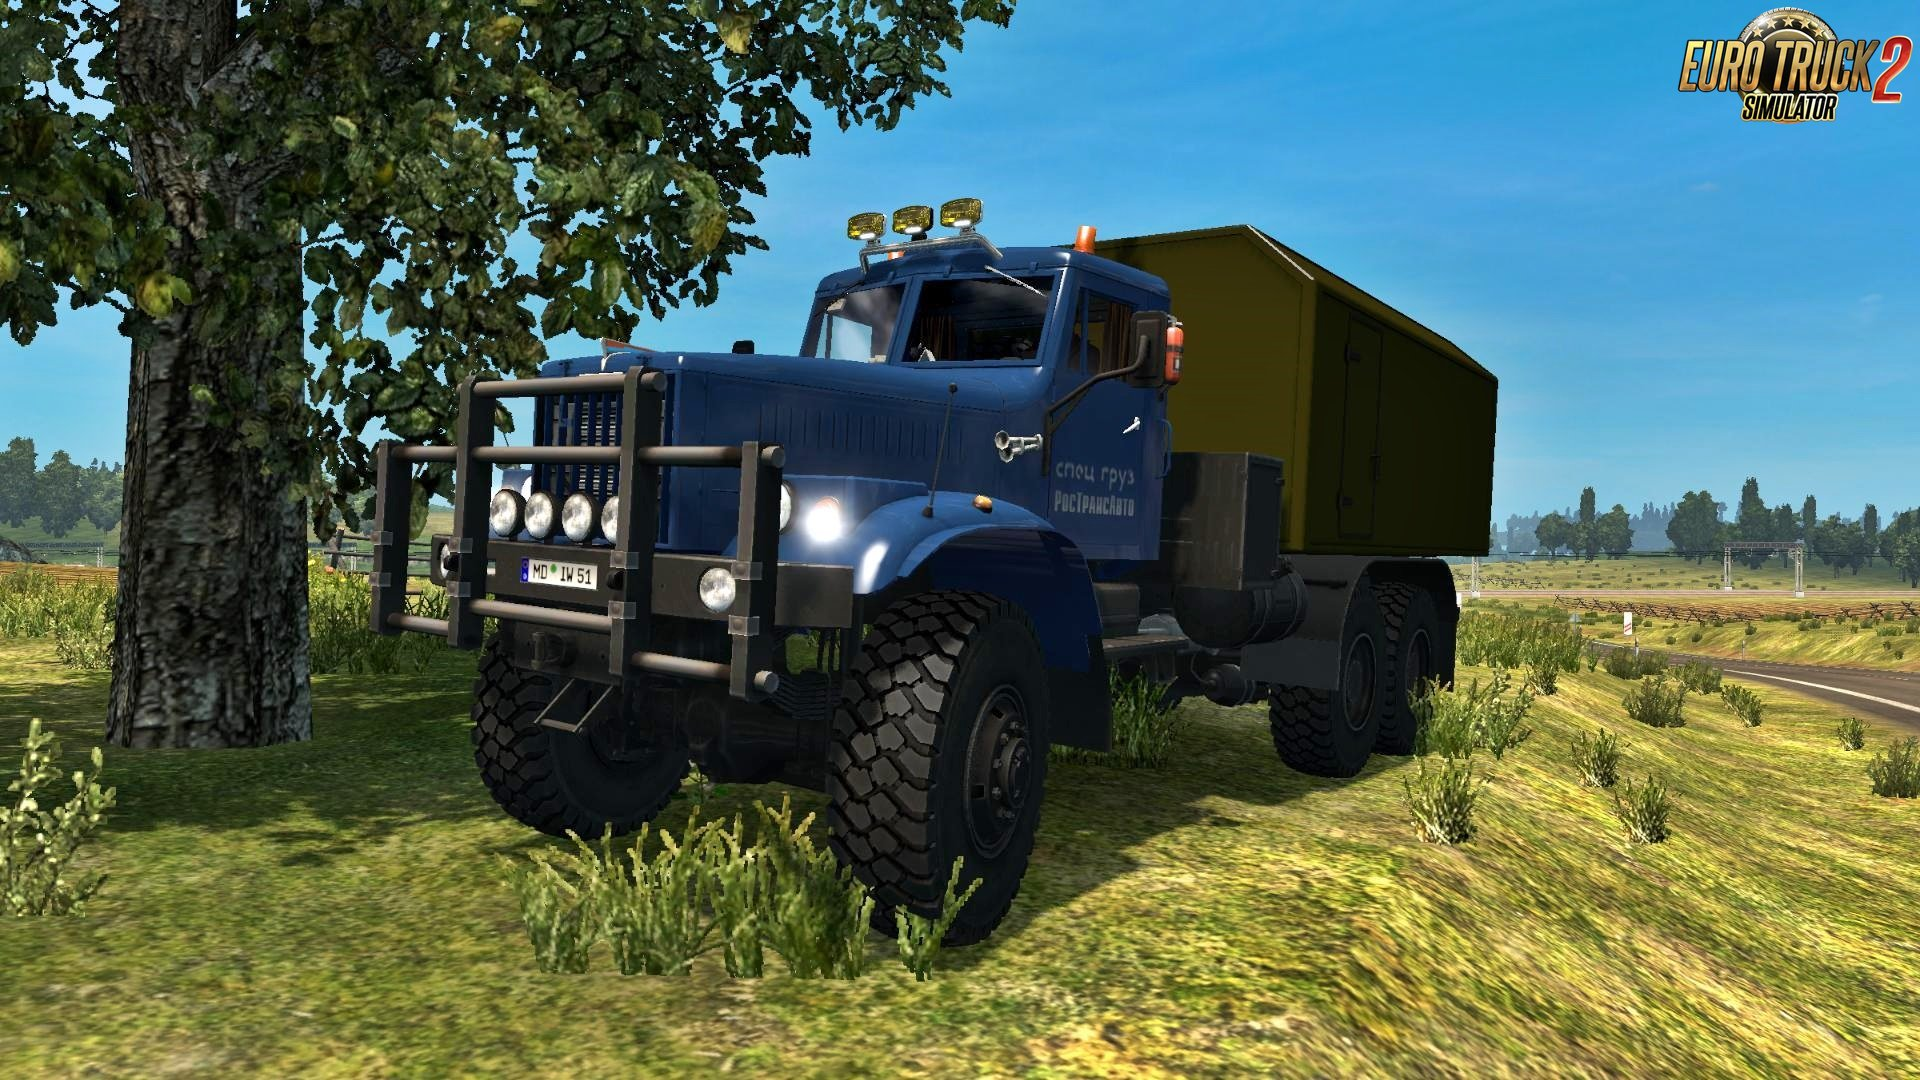 Kraz 255-260 v3.0 + New Wheels for Ets2 [1.26.x]